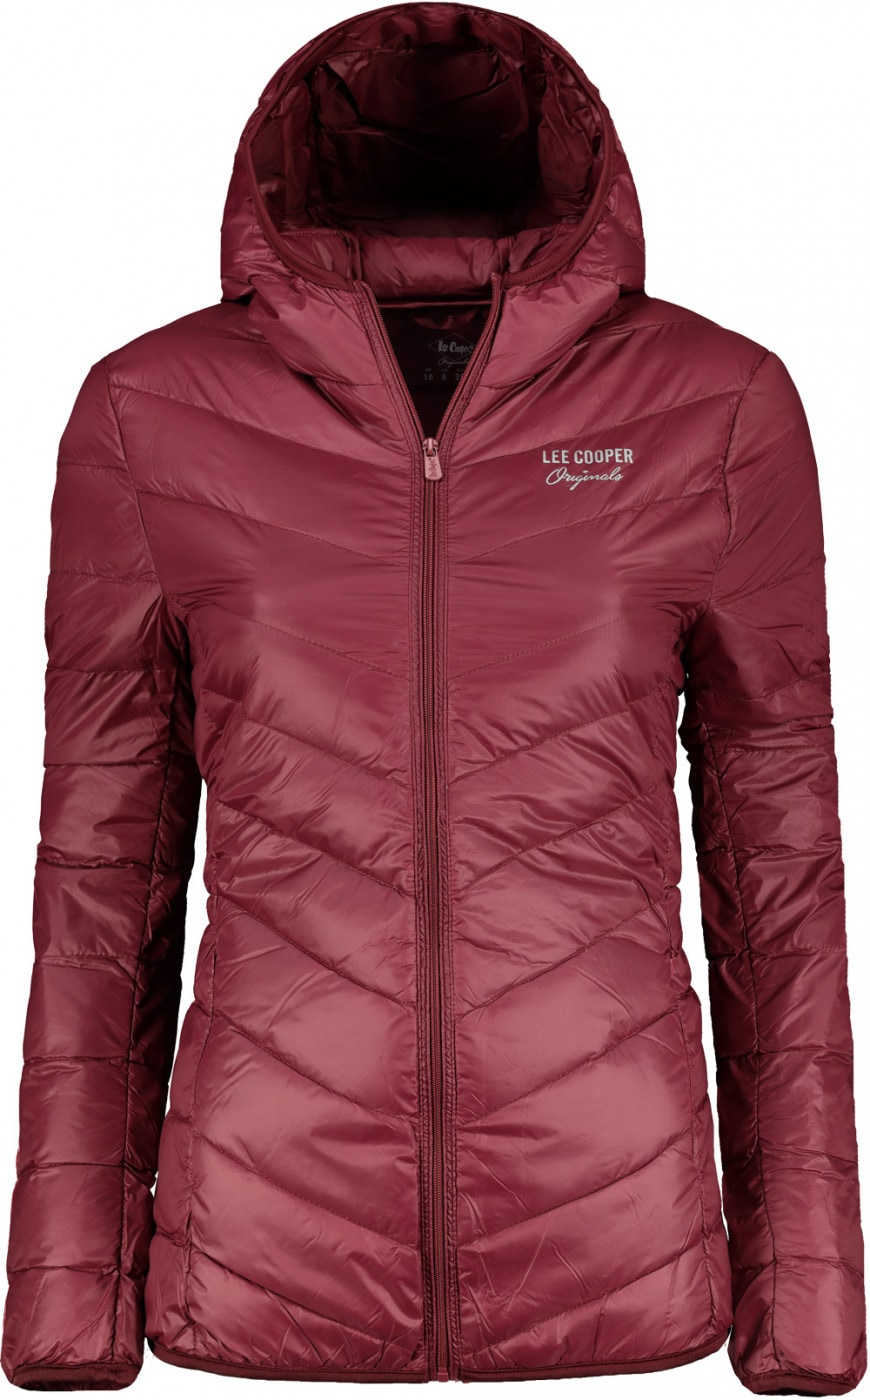 Lee Cooper Originals Xlite Hooded Down Jacket Ladies